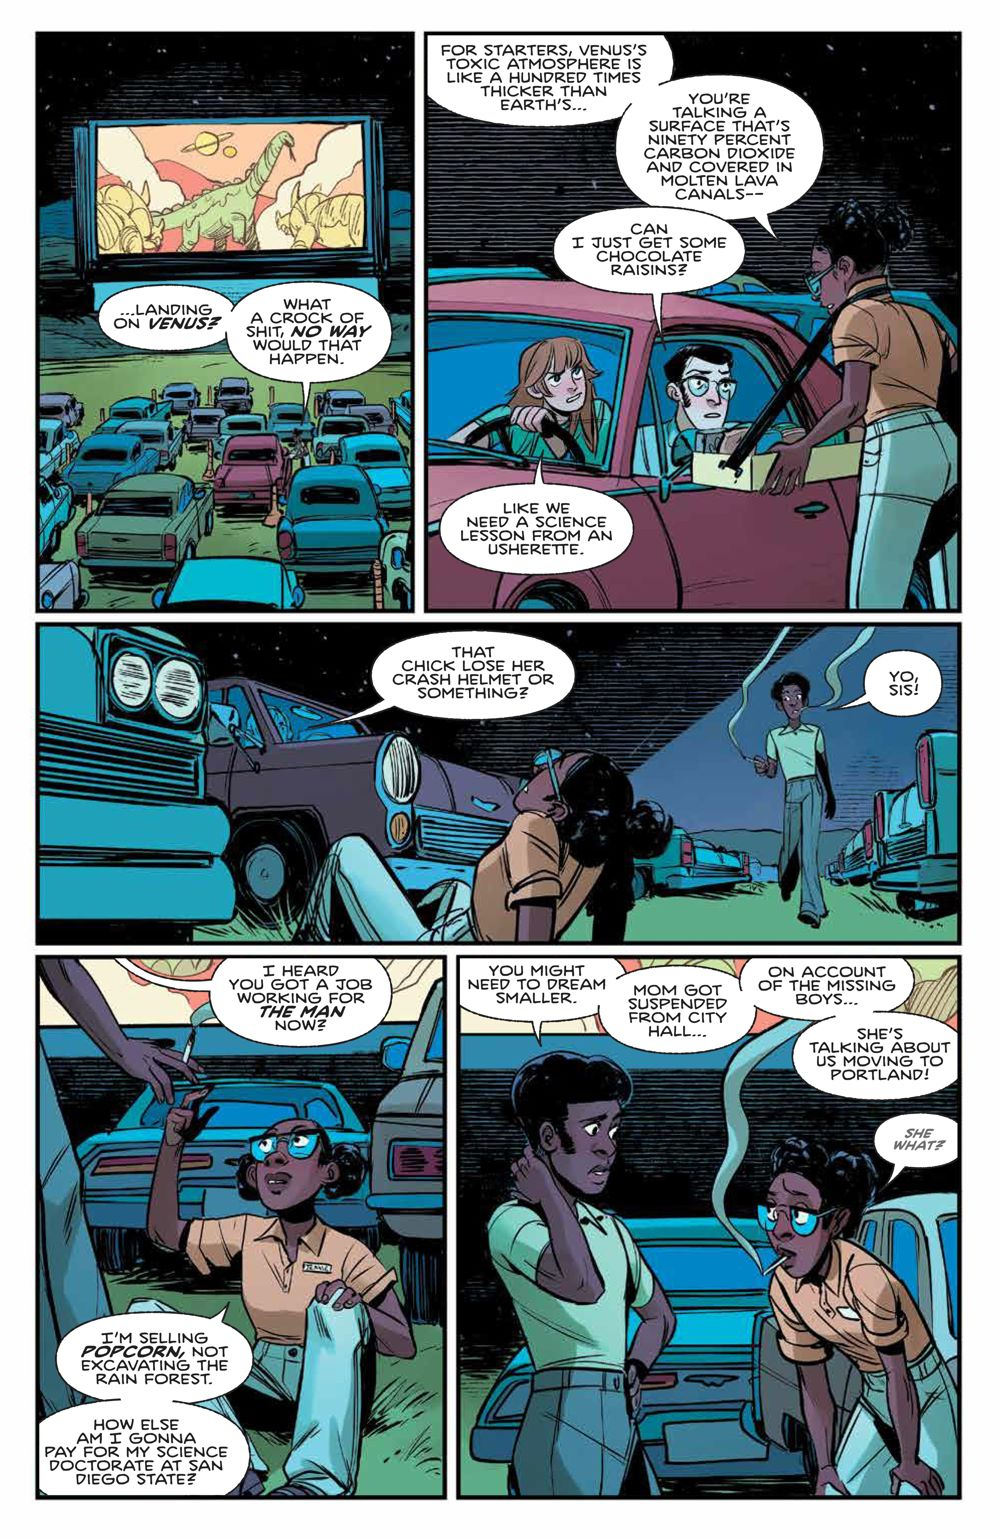 ProctorValleyRoad_005_PRESS_4 ComicList Previews: PROCTOR VALLEY ROAD #5 (OF 5)